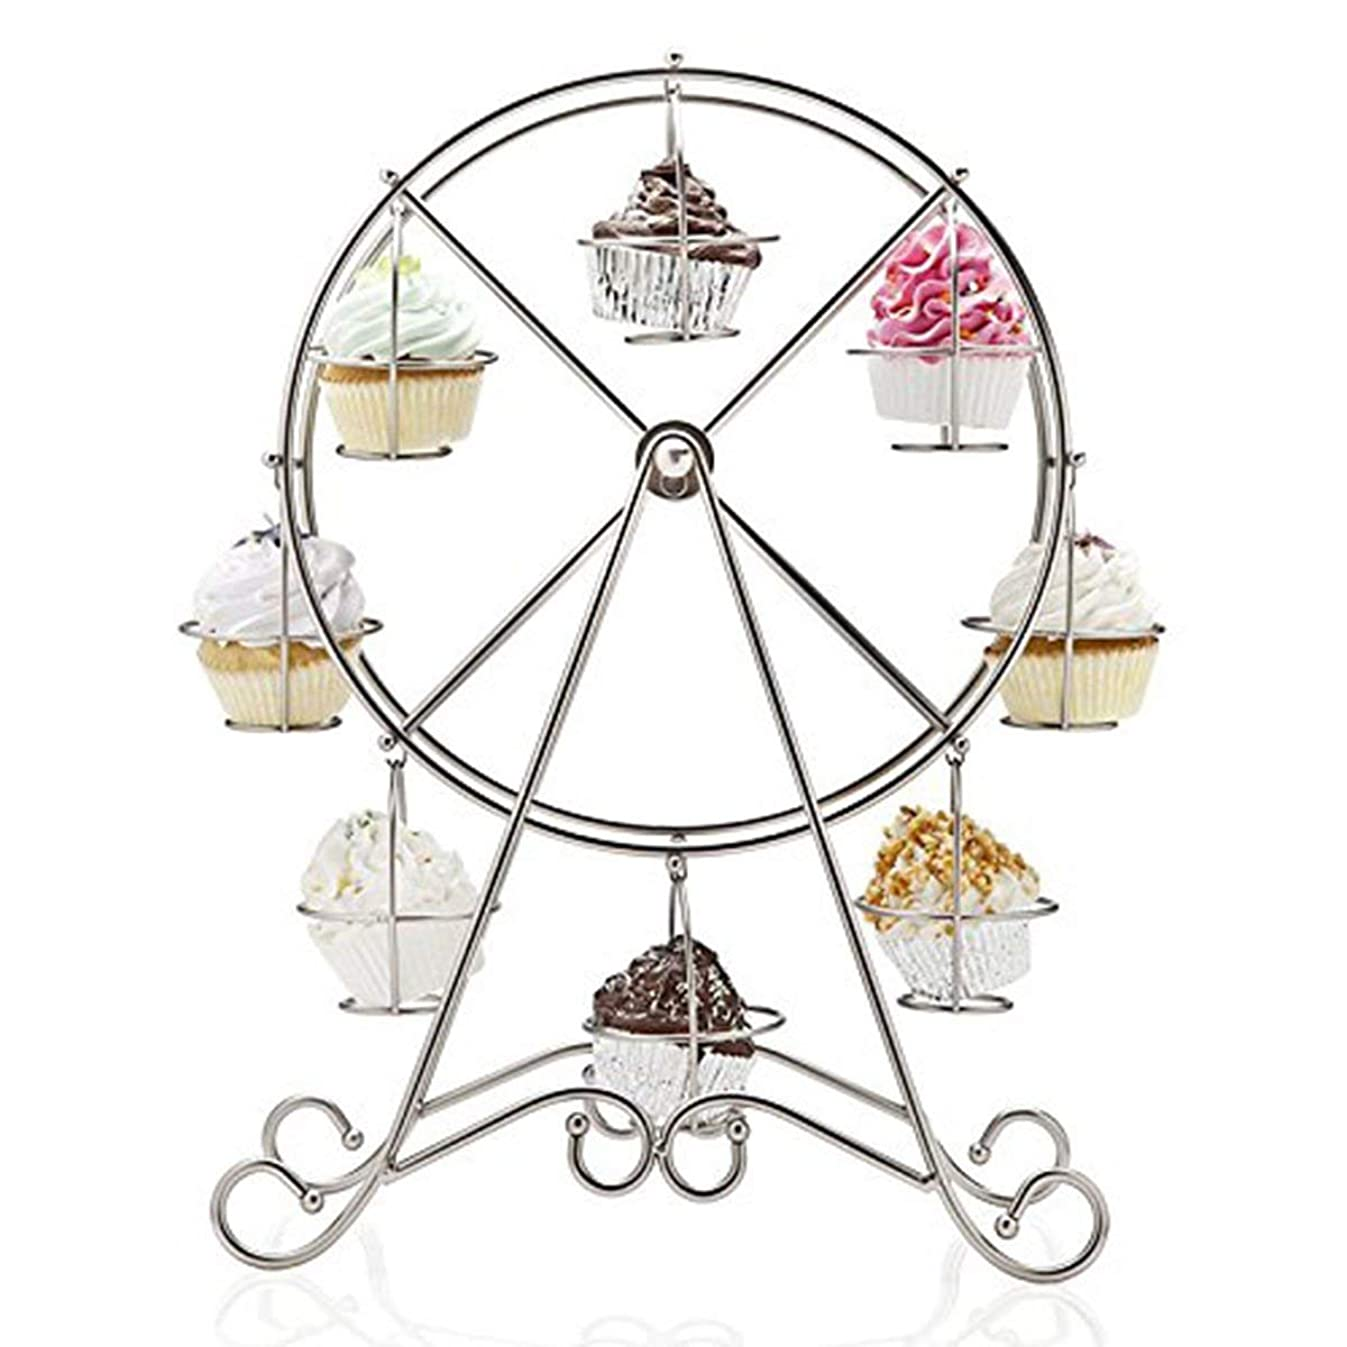 Charmed Ferris Wheel Cupcake Stand for Carnival and Circus Theme Party